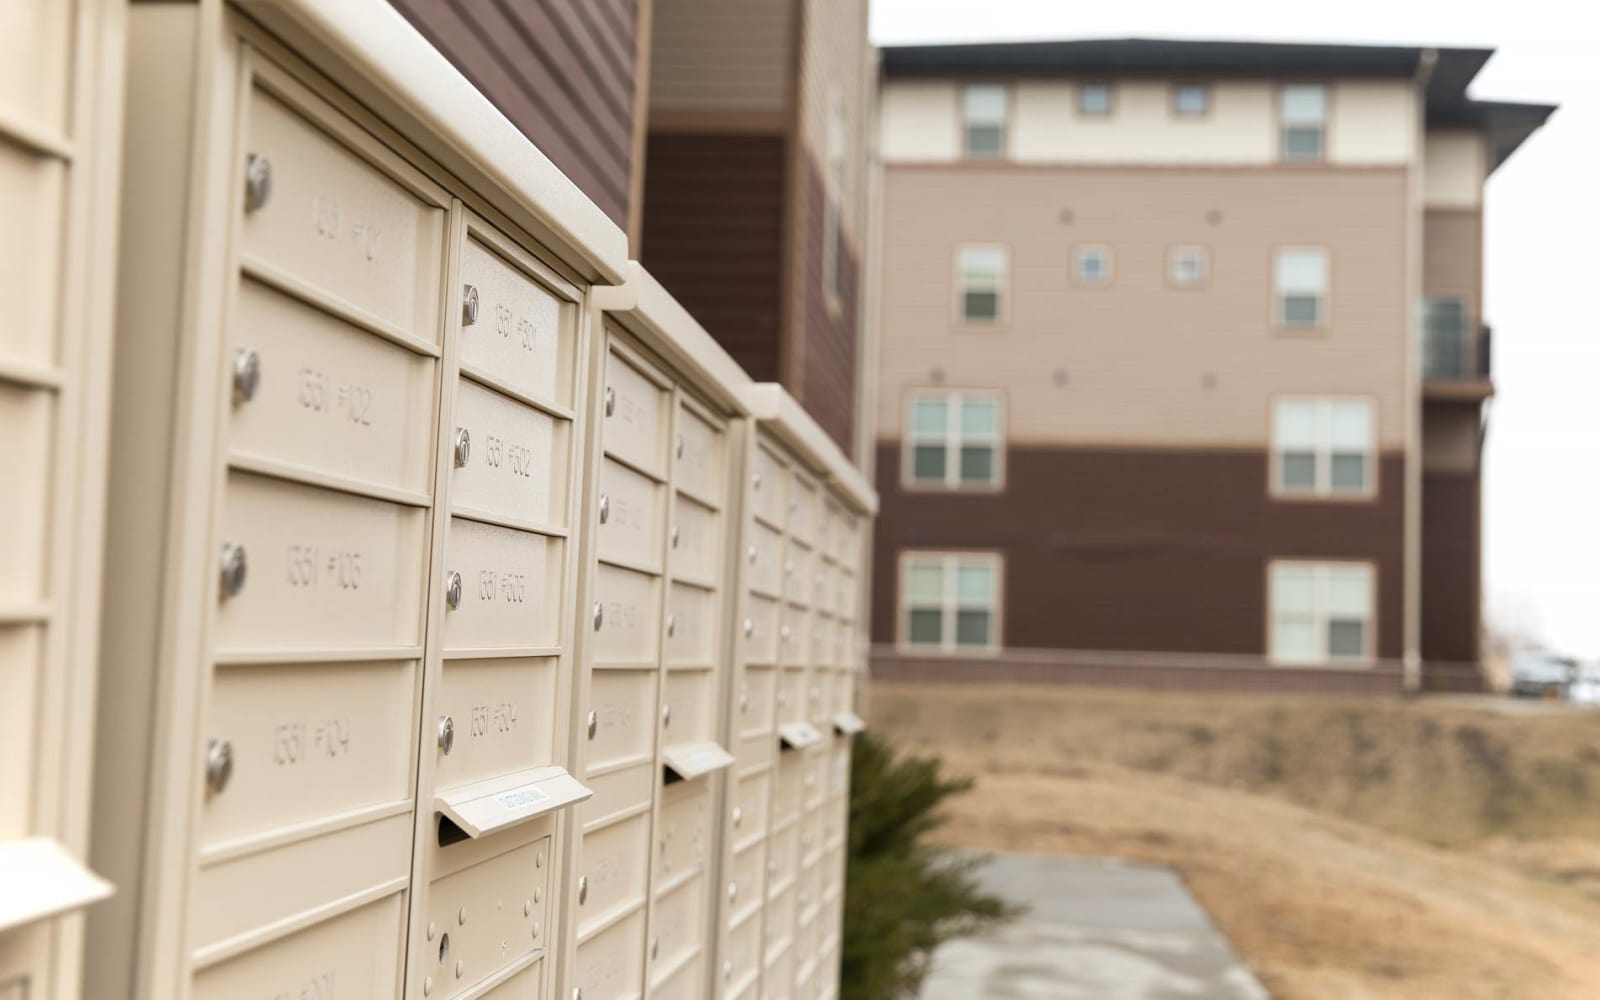 Mail boxes at Prairie Pointe Student Living in Ankeny, Iowa